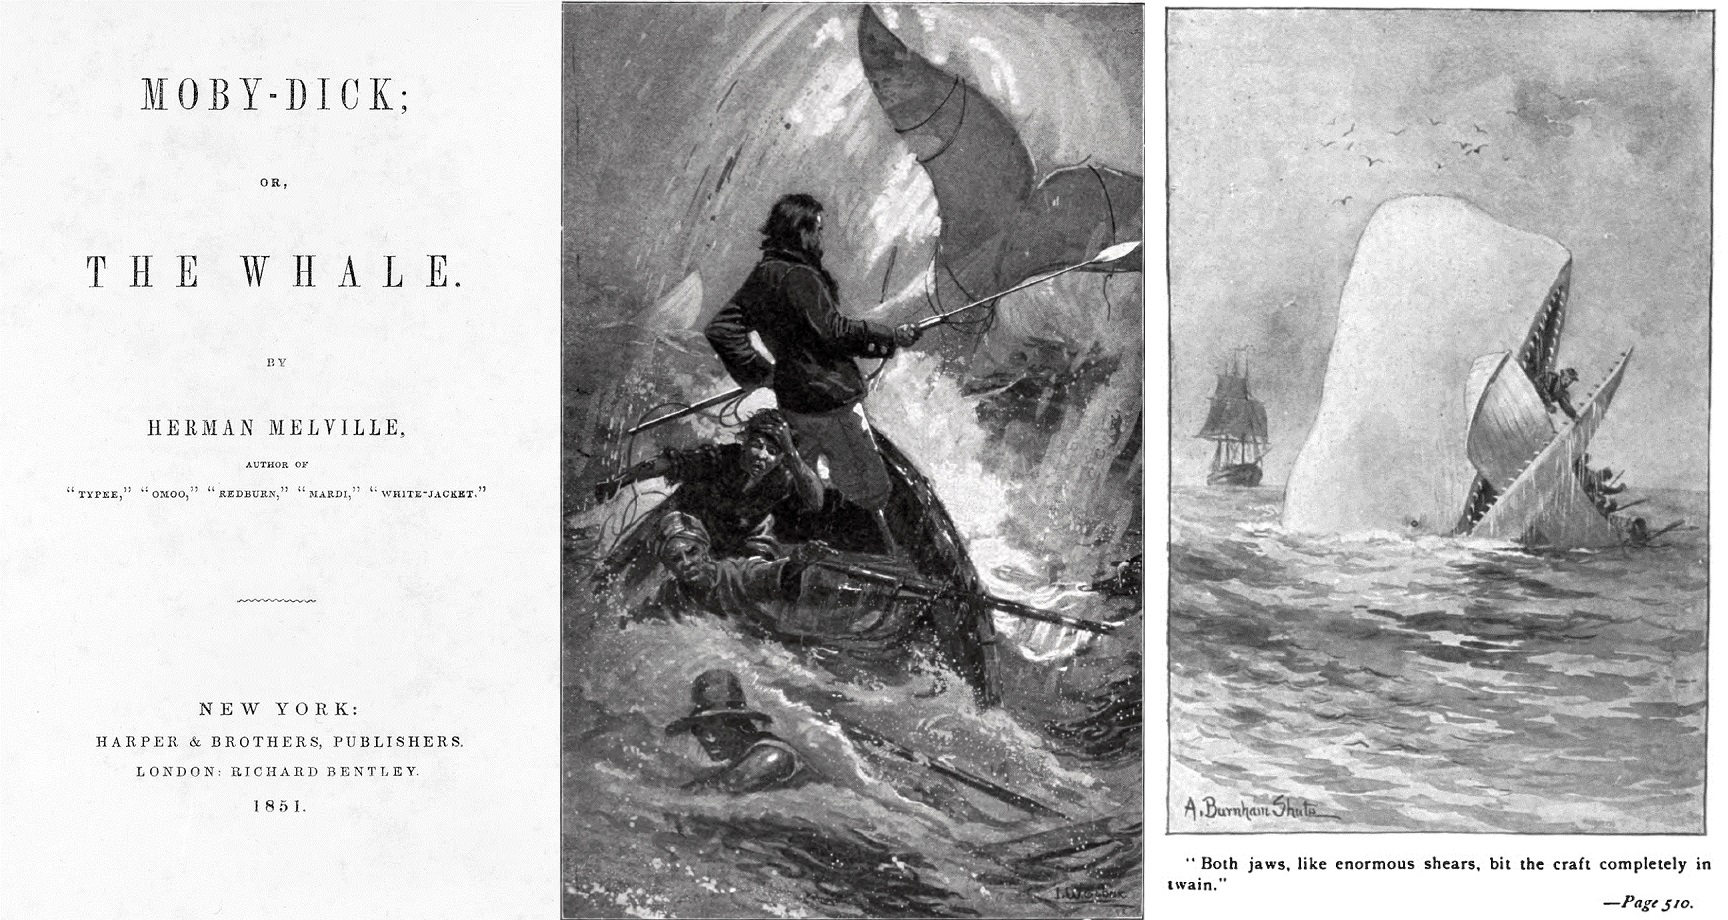 Melville's 1851 novel Moby-Dick is perhaps the most celebrated depiction of whales in literature .   Harper & Brothers/Wikimedia Commons ;  I.W. Taber/Wikimedia Commons ;  A. Burnham Shute/Wikimedia Commons  (public domain)